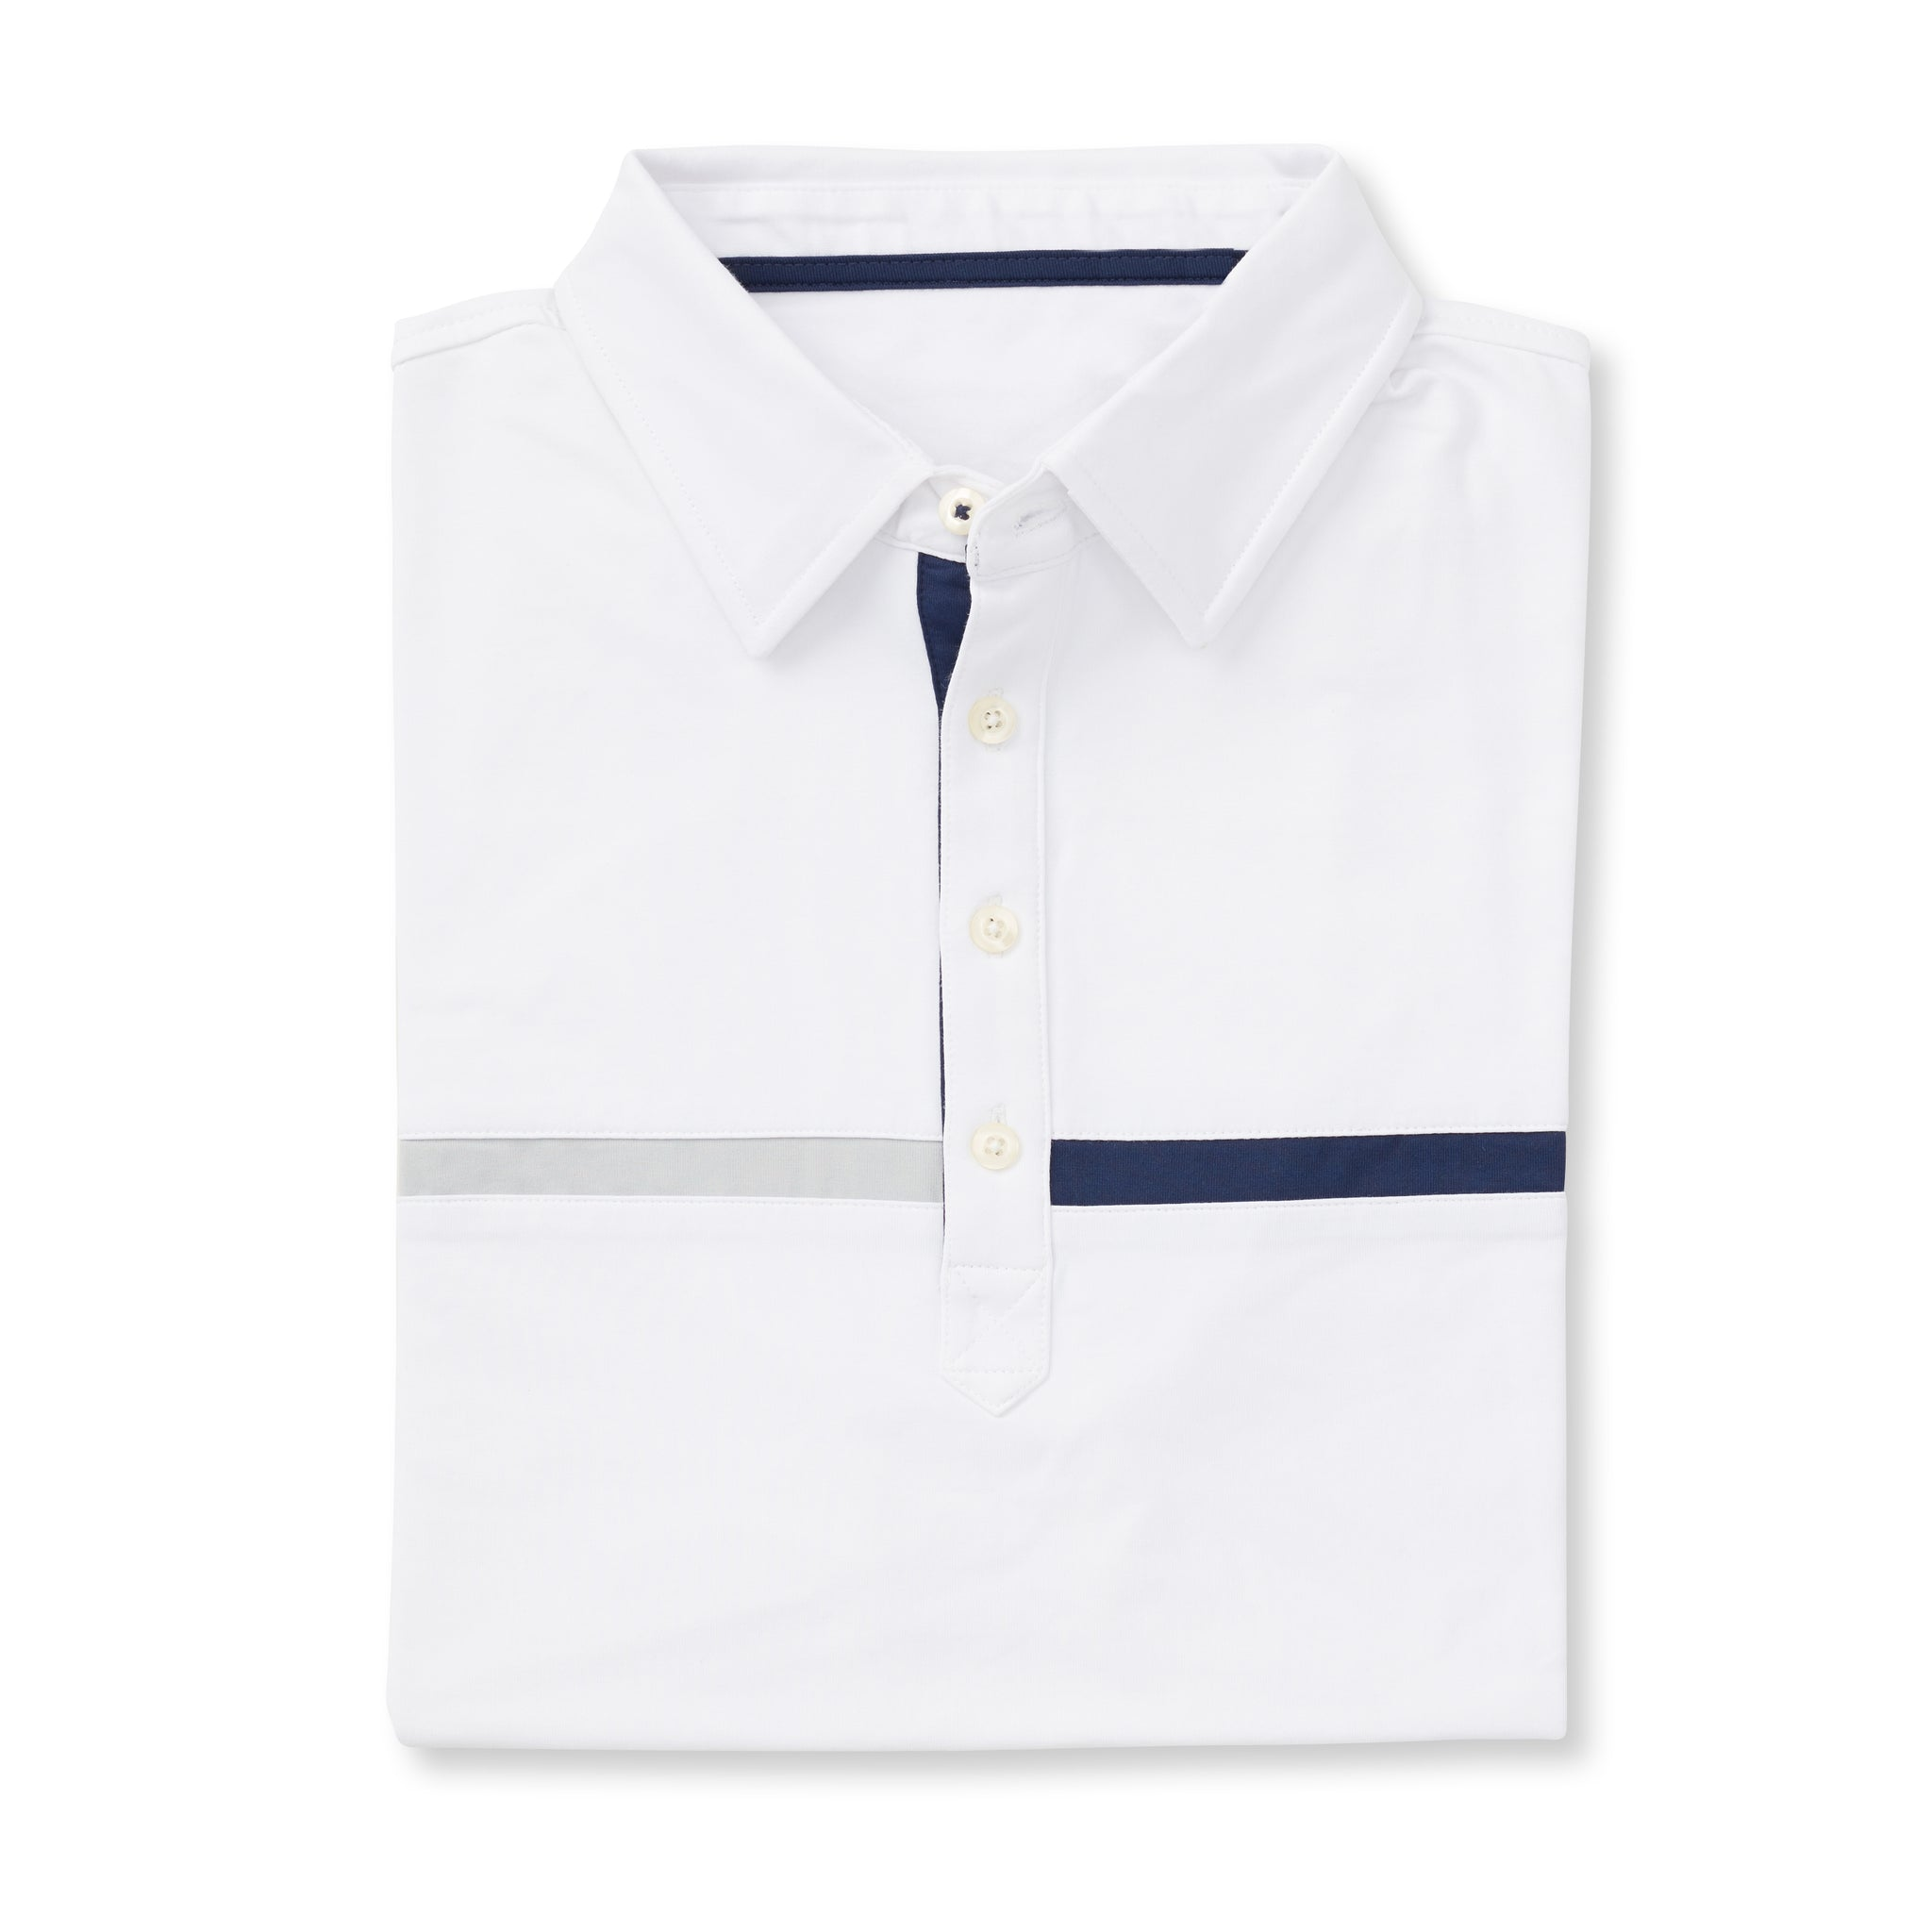 THE SNEED LUXTEC COLOR BLOCK POLO - White IS72420